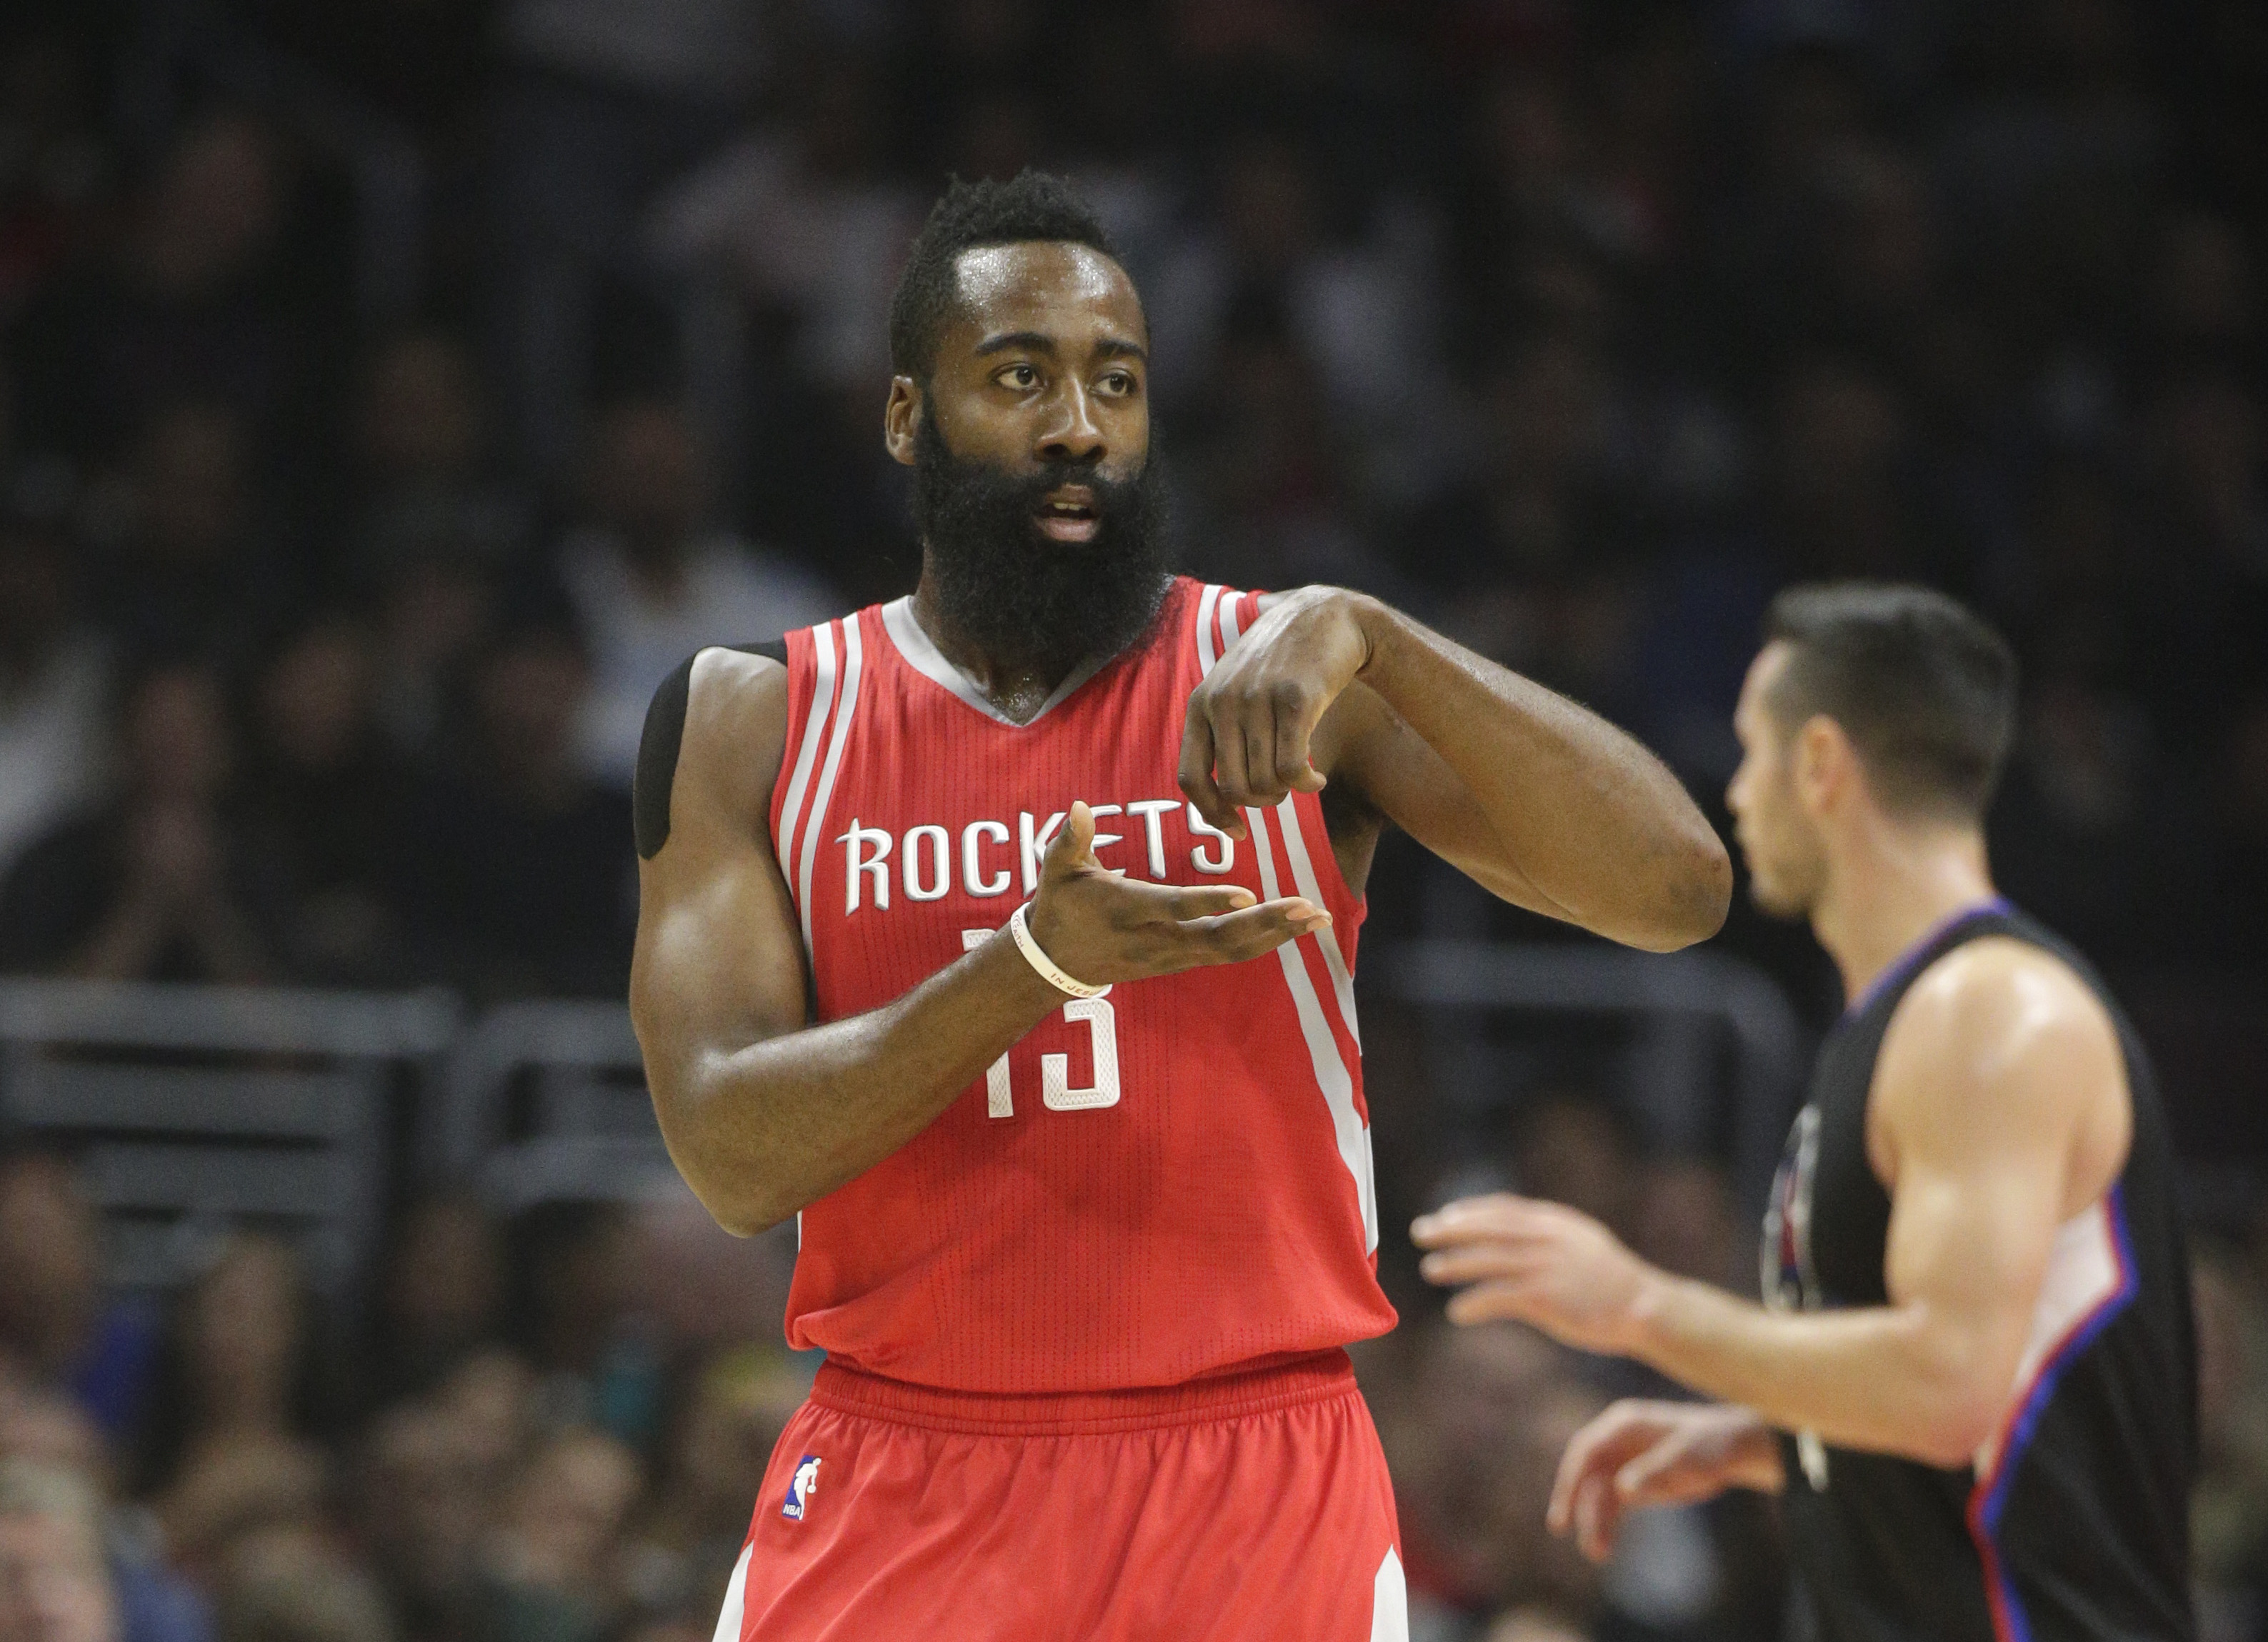 Houston Rockets' James Harden gestures after making a basket during the first half of an NBA basketball game against the Los Angeles Clippers, Saturday, Nov. 7, 2015, in Los Angeles. (AP Photo/Jae C. Hong)